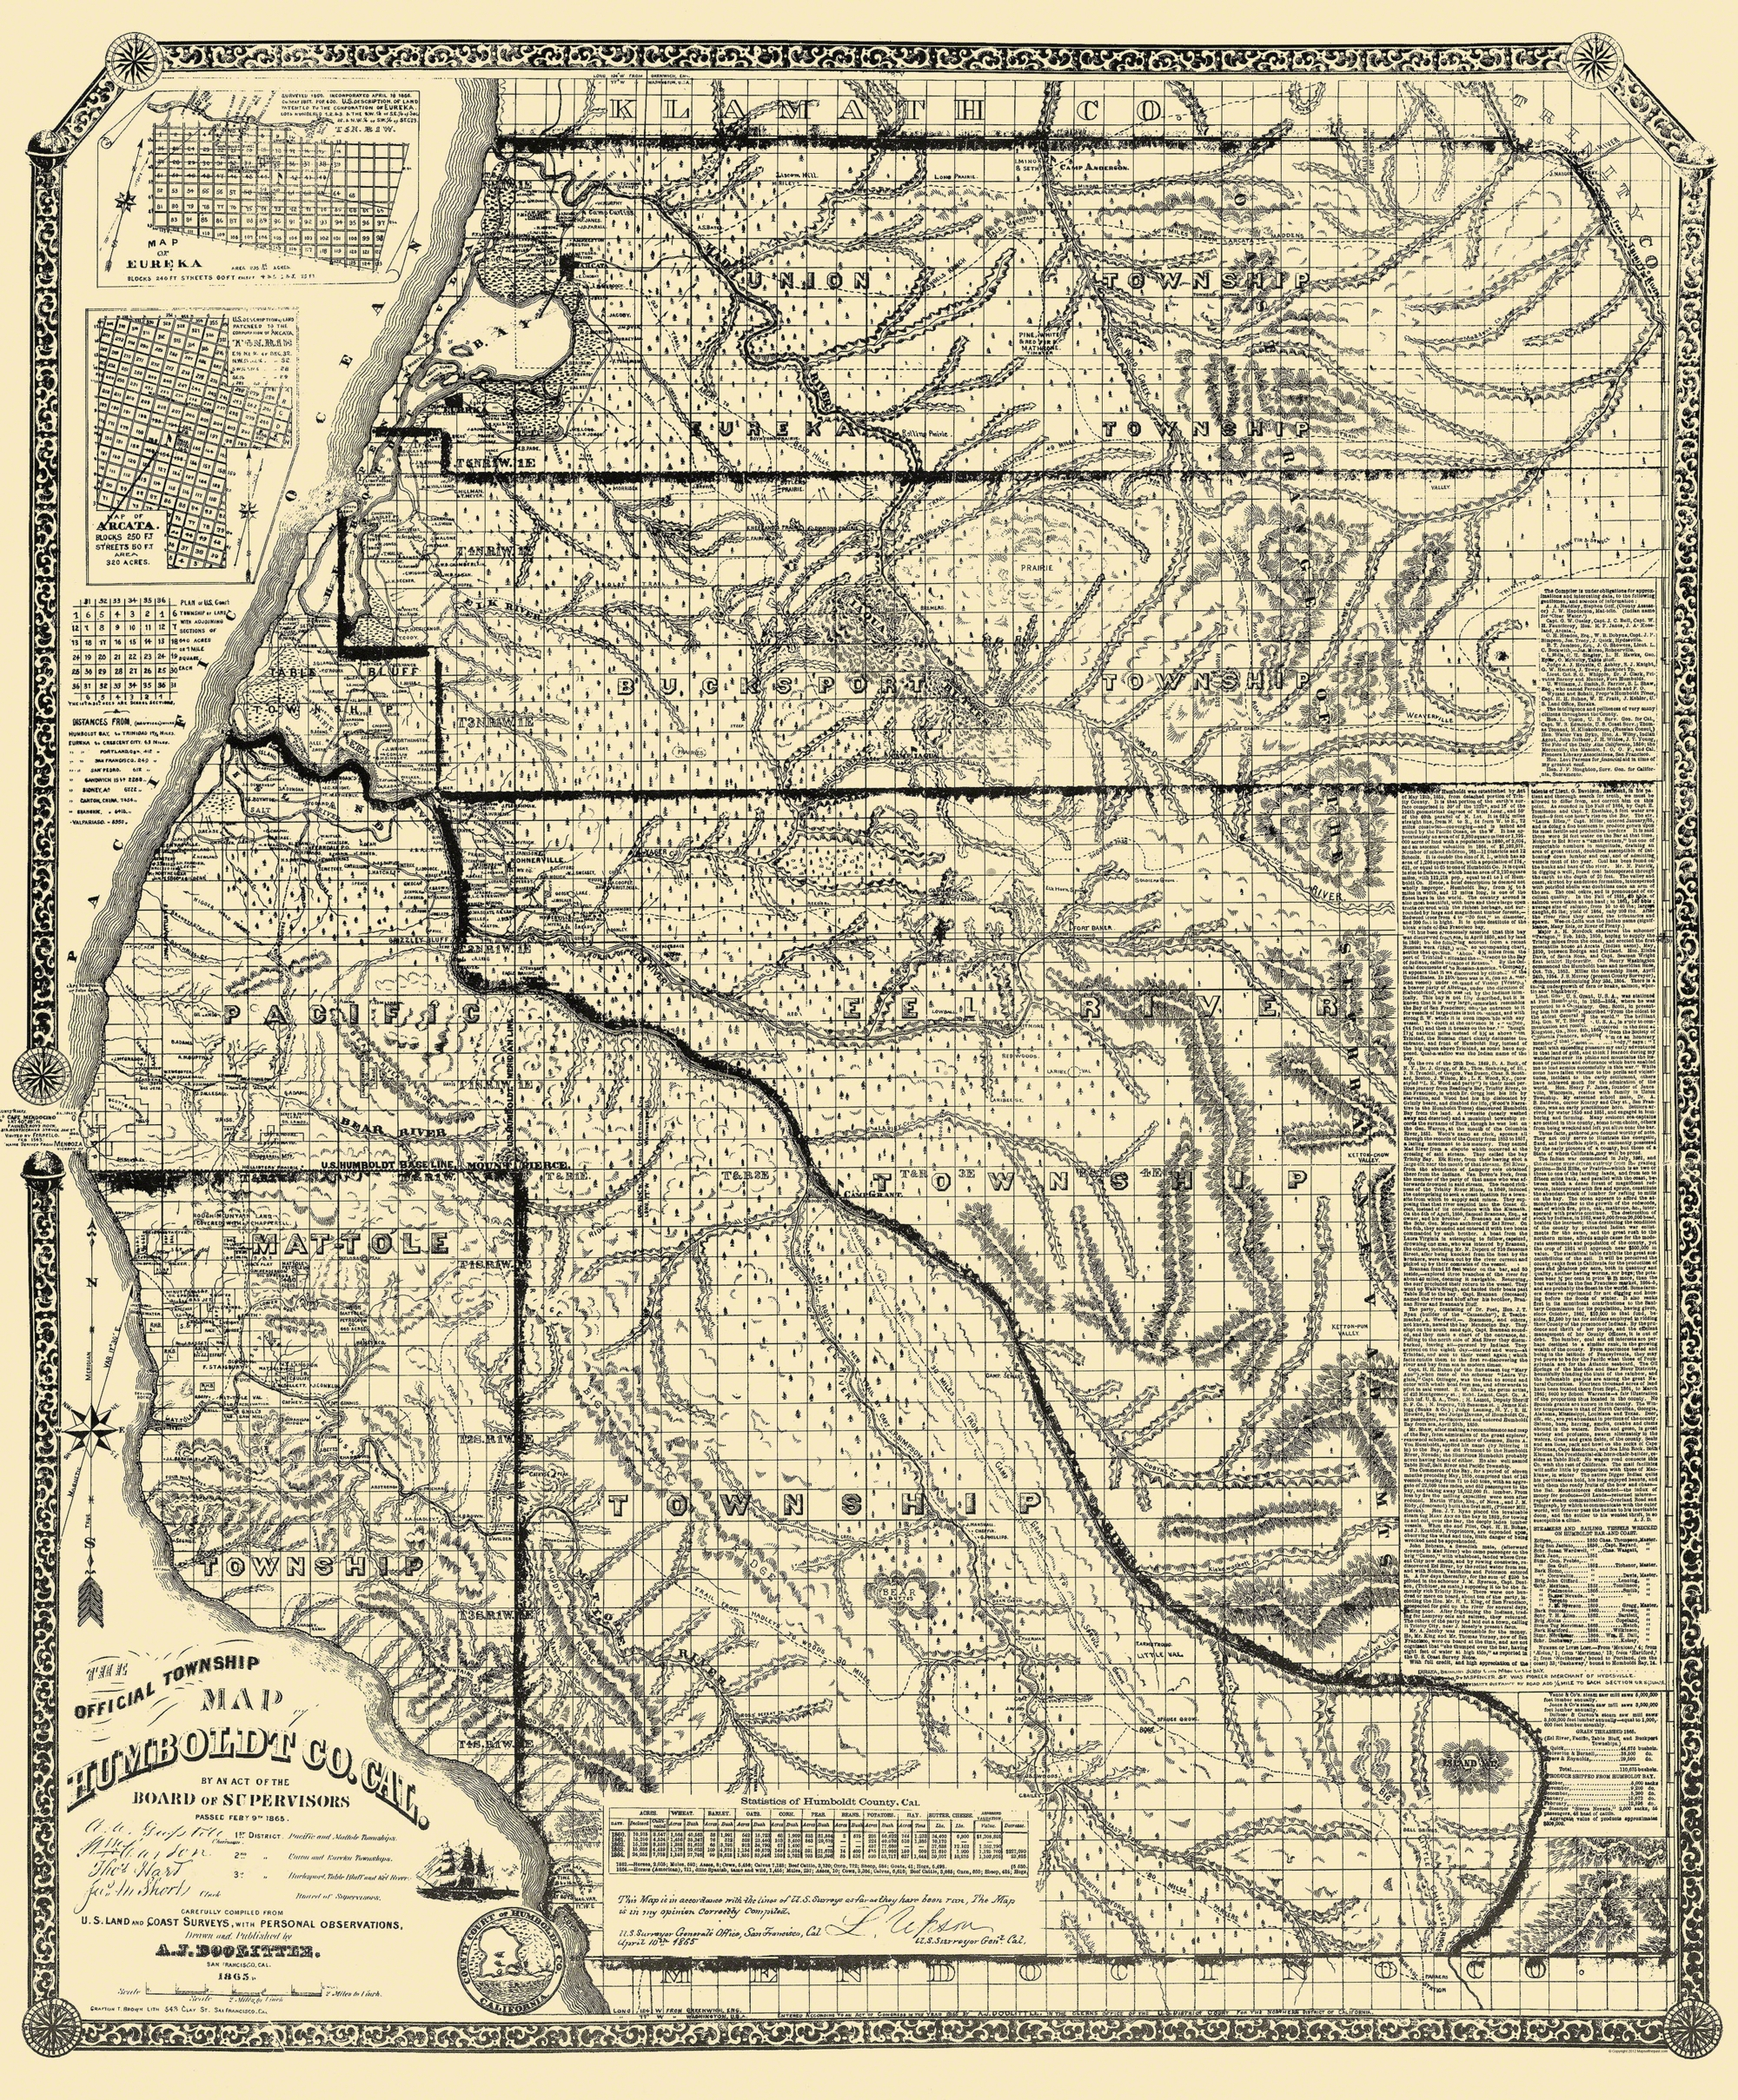 Old County Map Humboldt California Landowner 1865